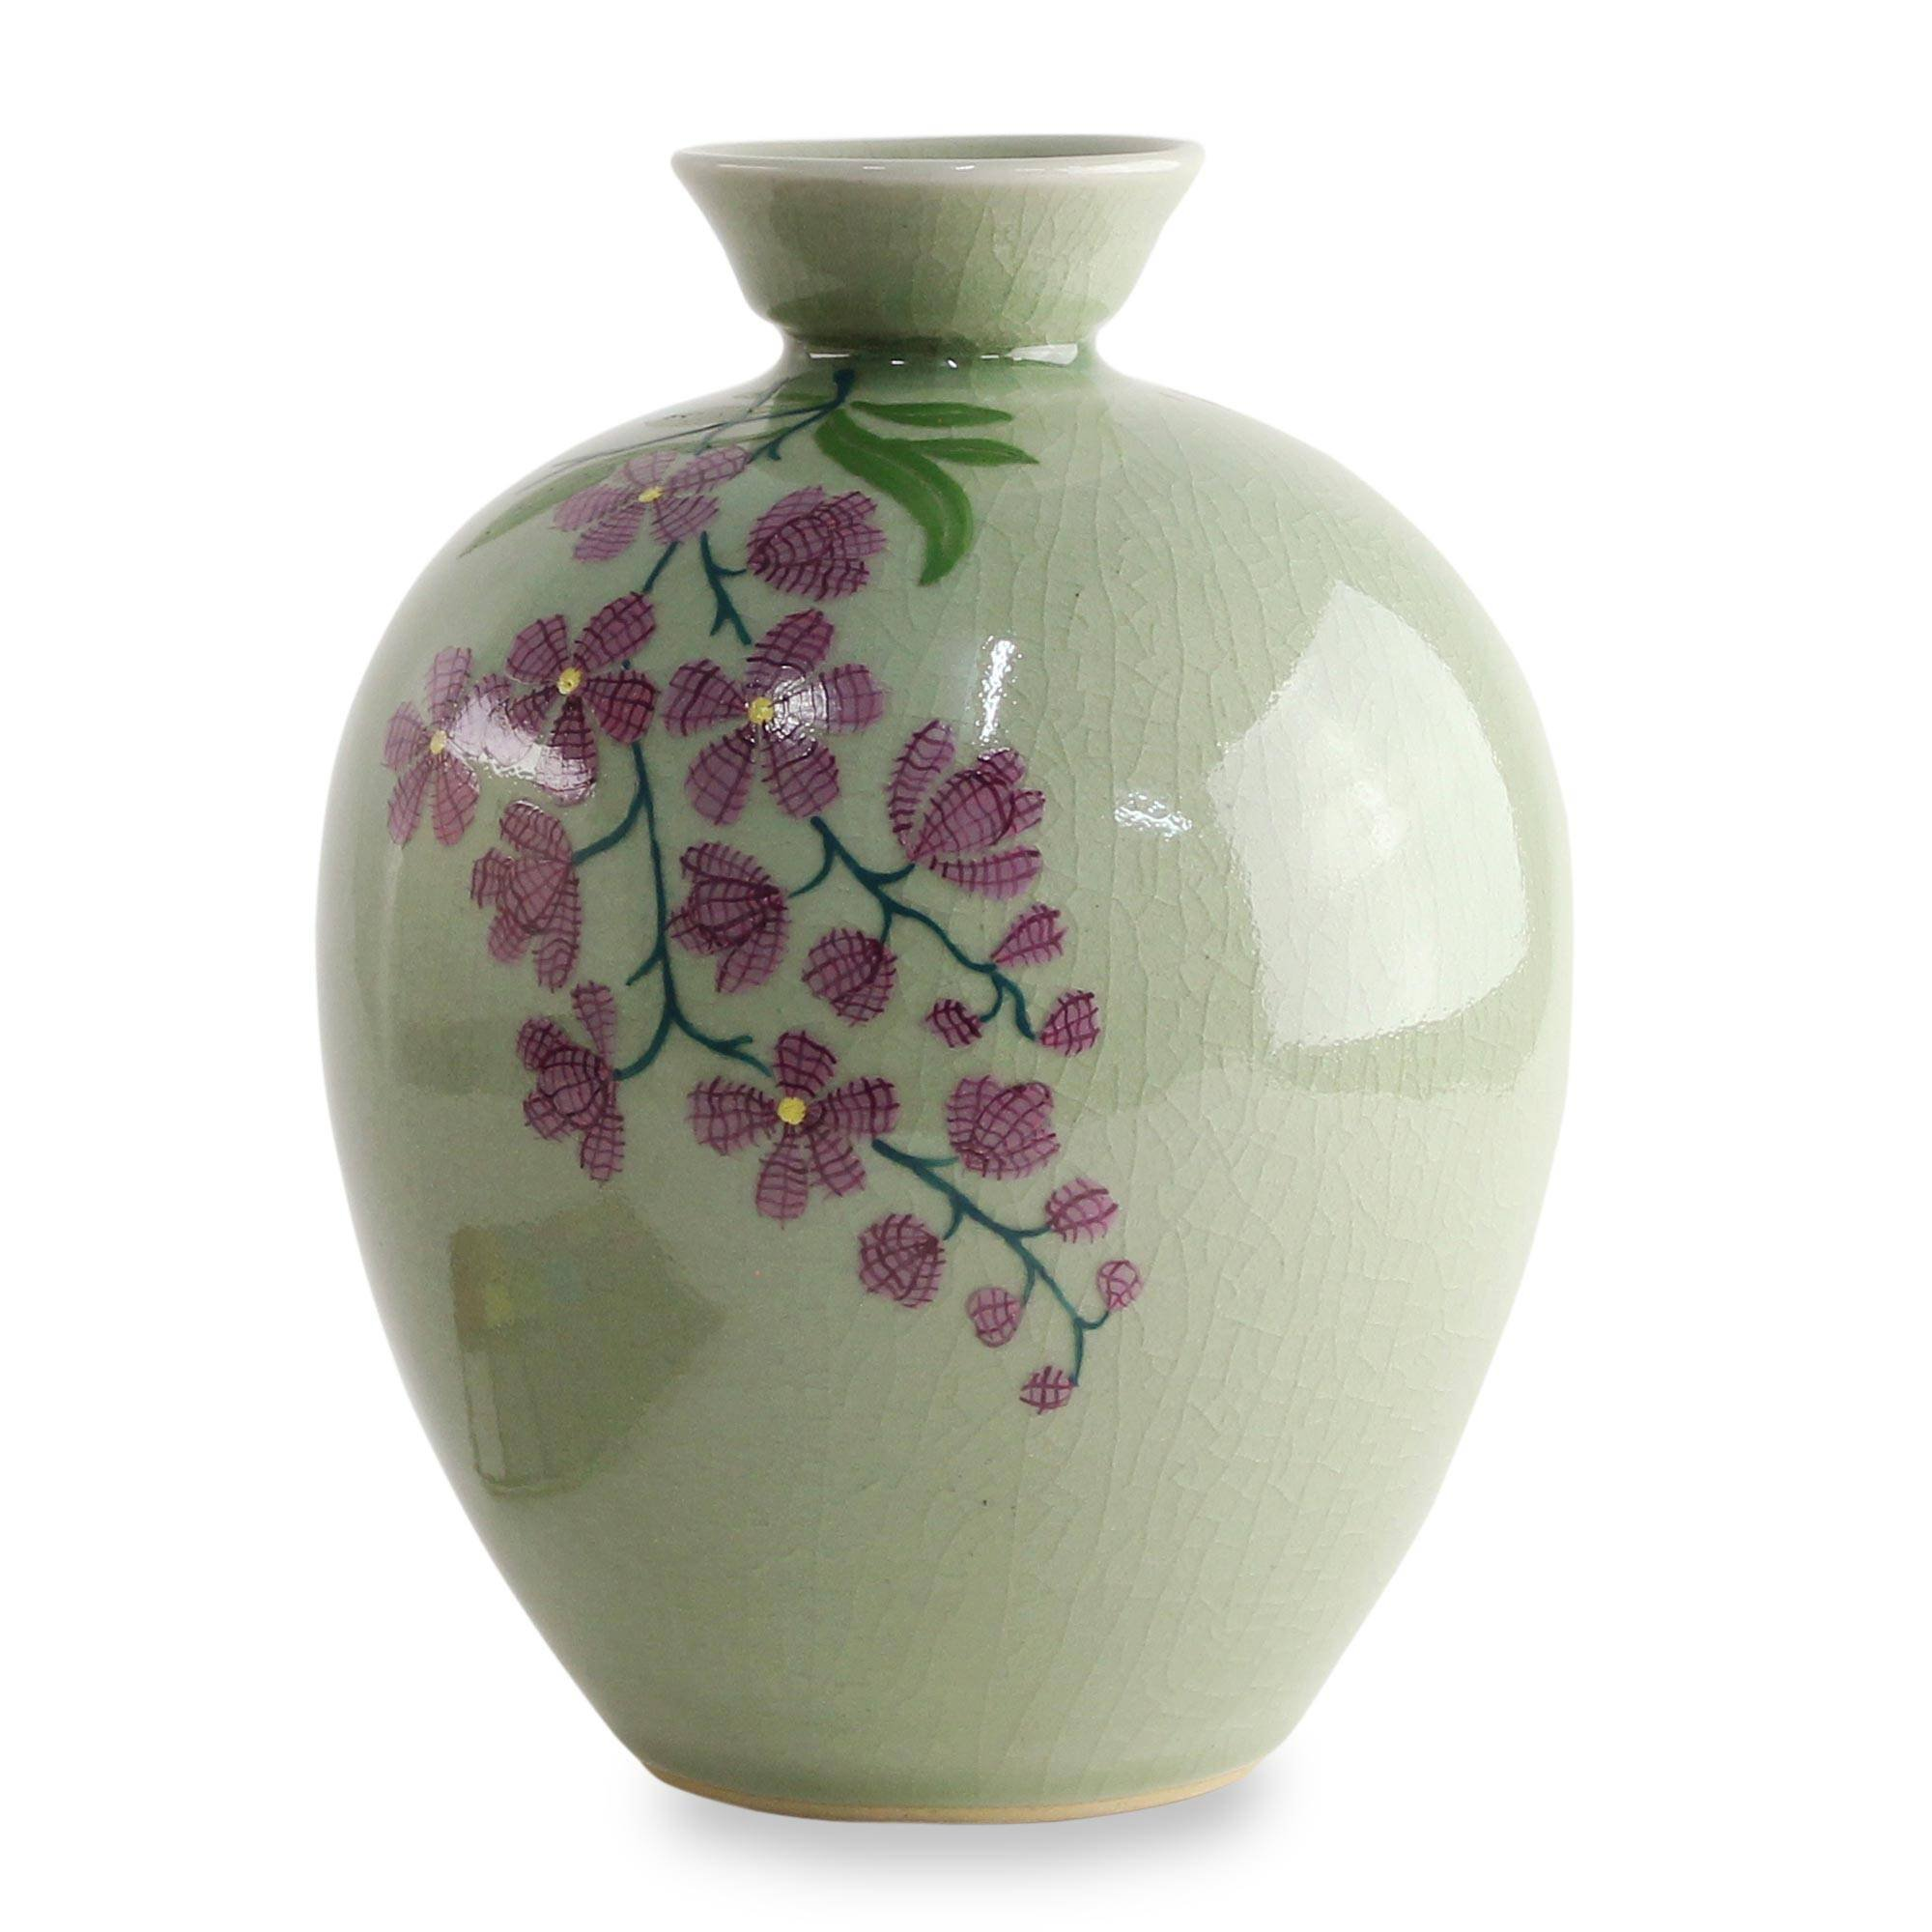 NOVICA Decorative Ceramic Celadon Vase, Green and Pink, 'Round Garden' by NOVICA